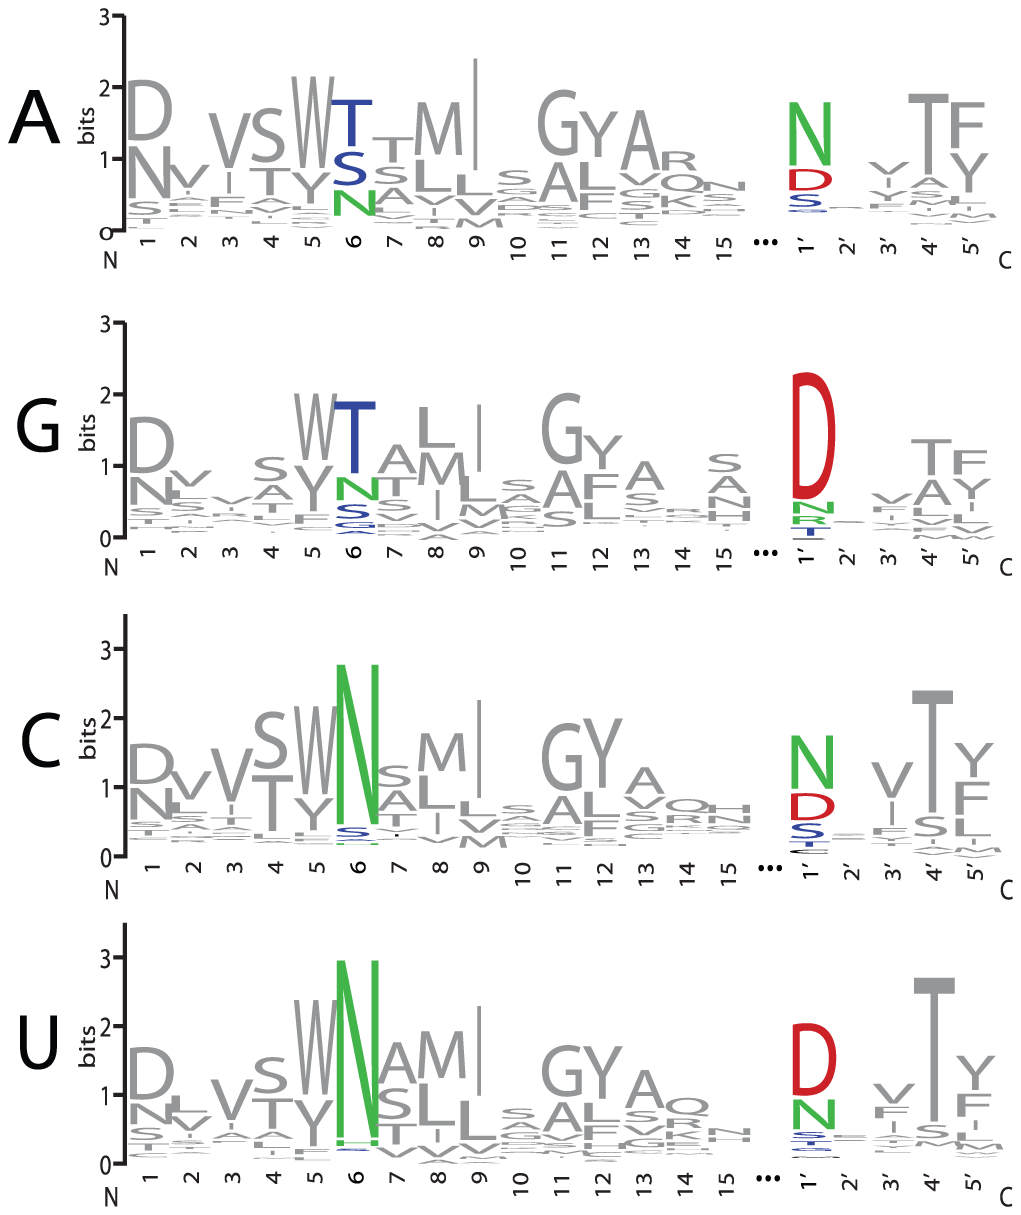 Amino Acid Representation at Each Position of PPR Motifs that Align with A, G, C, or U Bases.